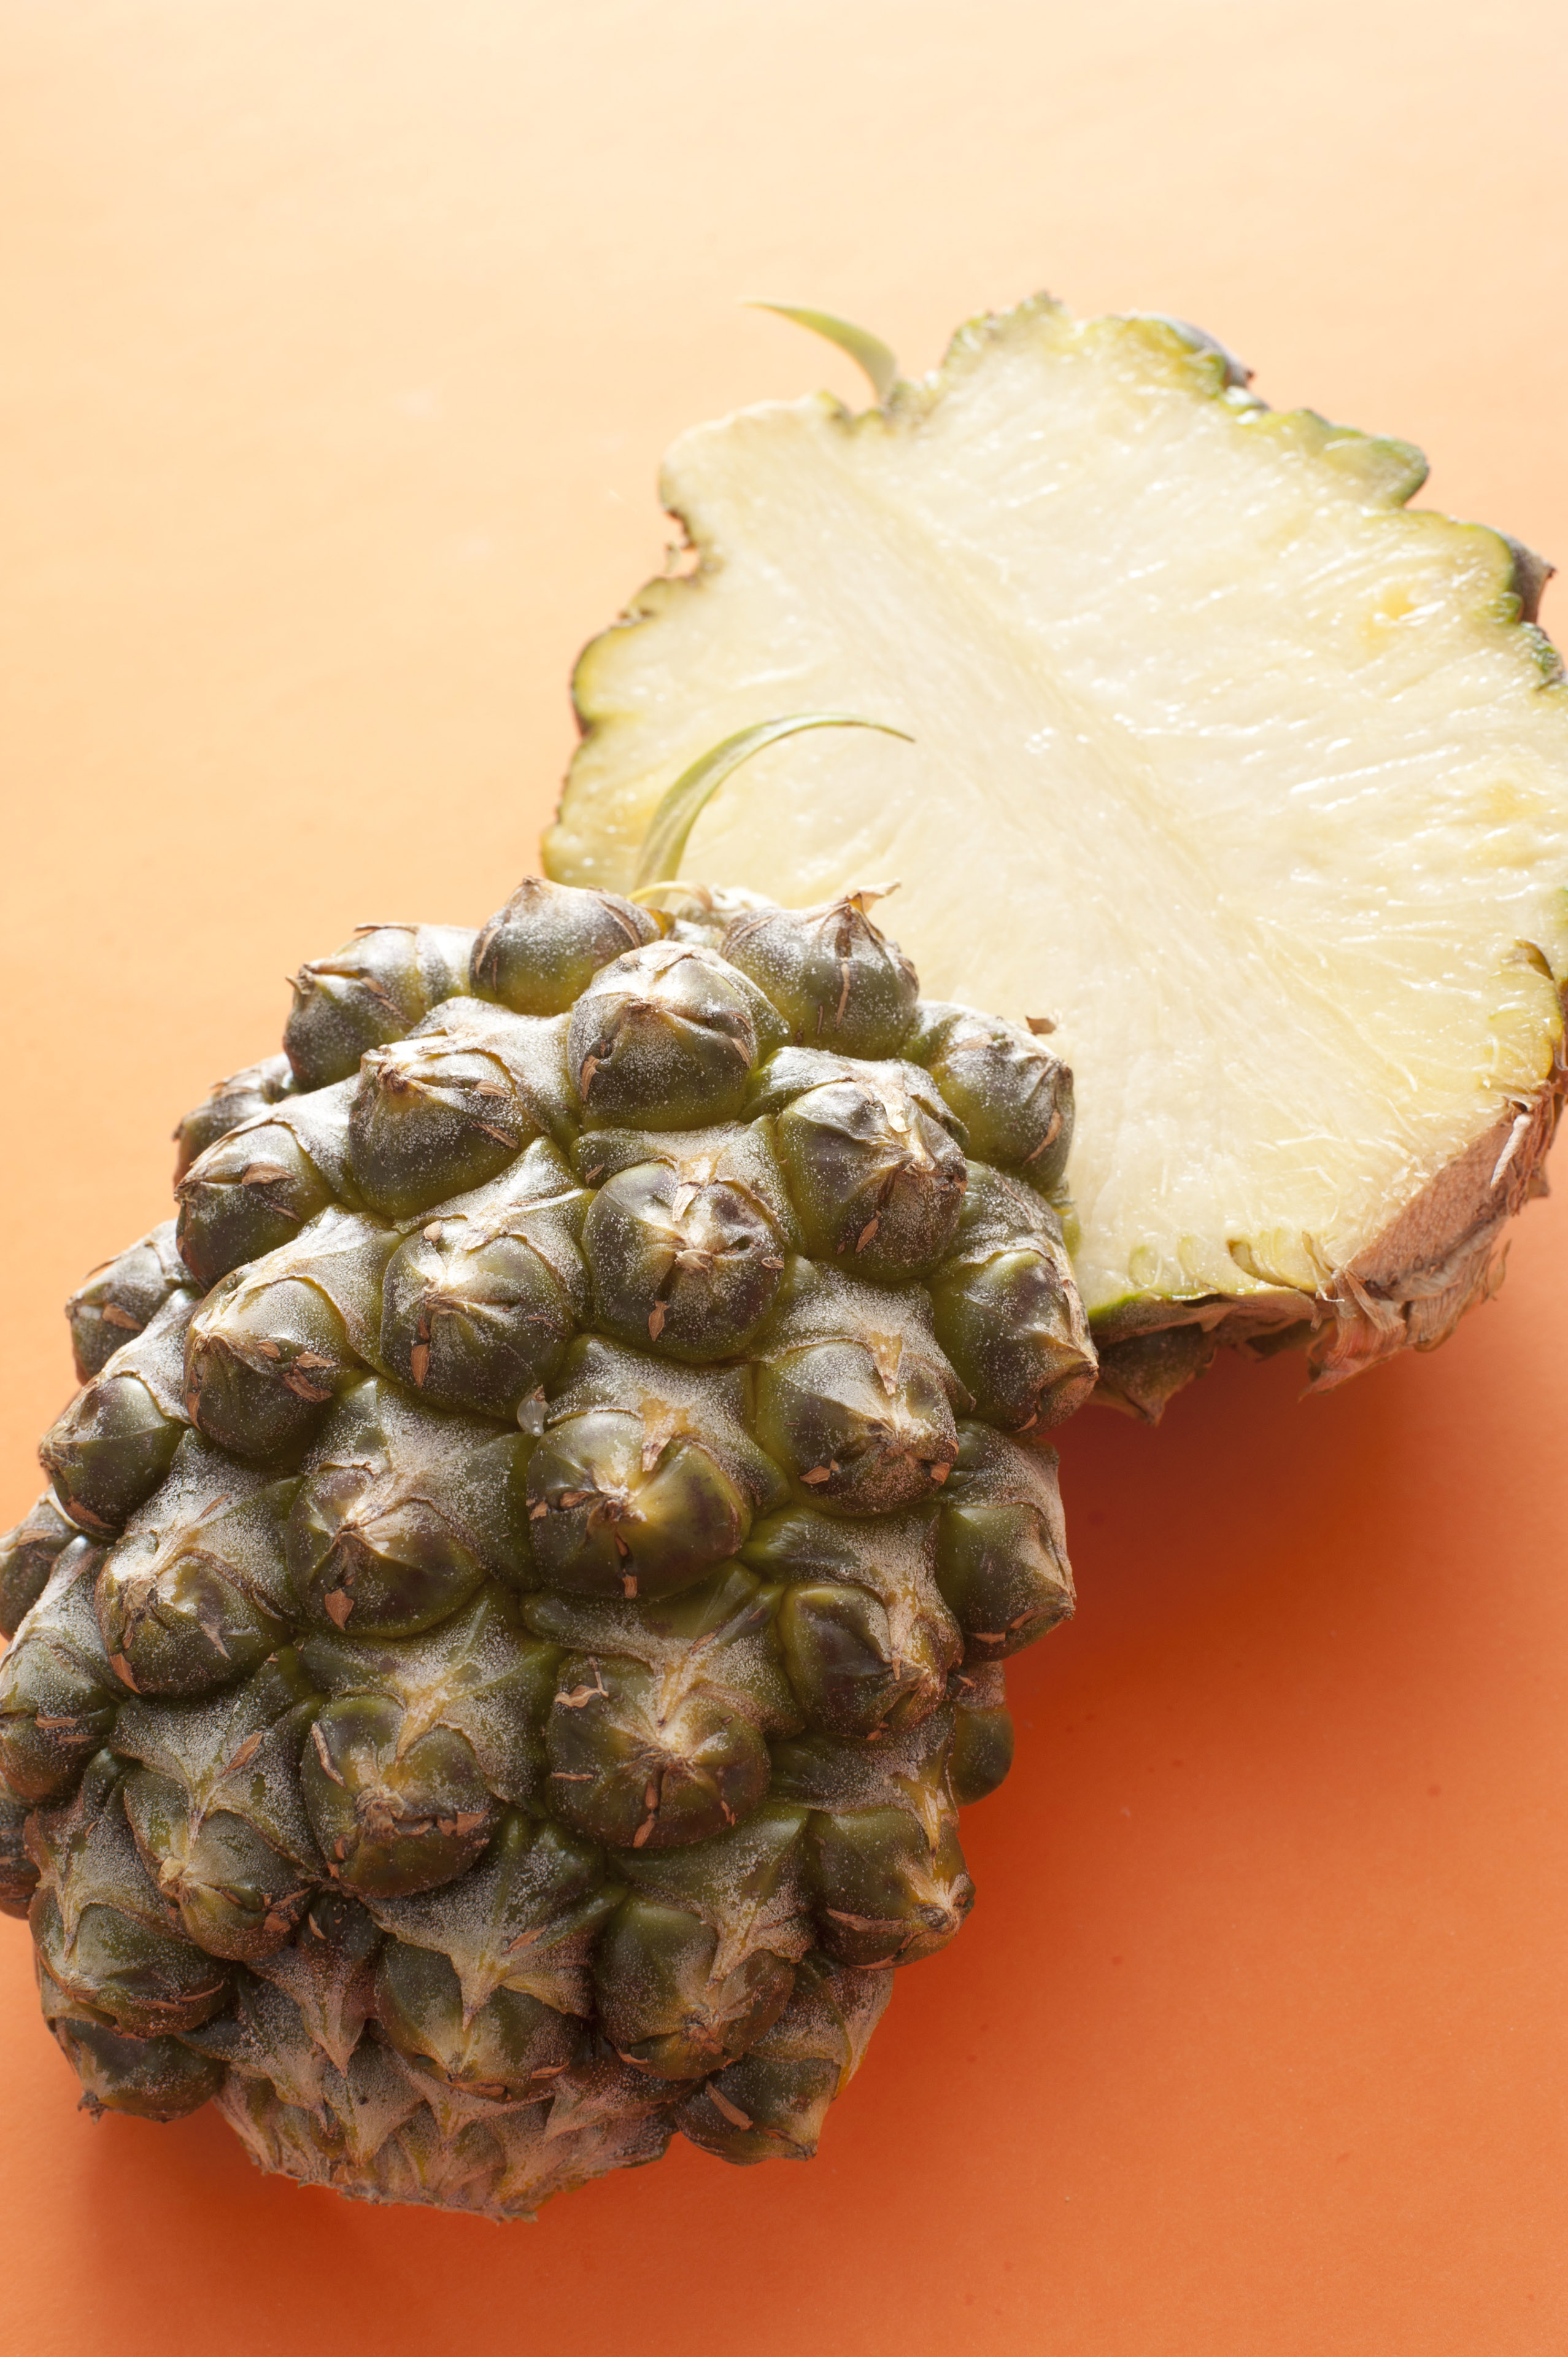 A fresh pineapple cut in half and isolated on a bright orange background with copy space.